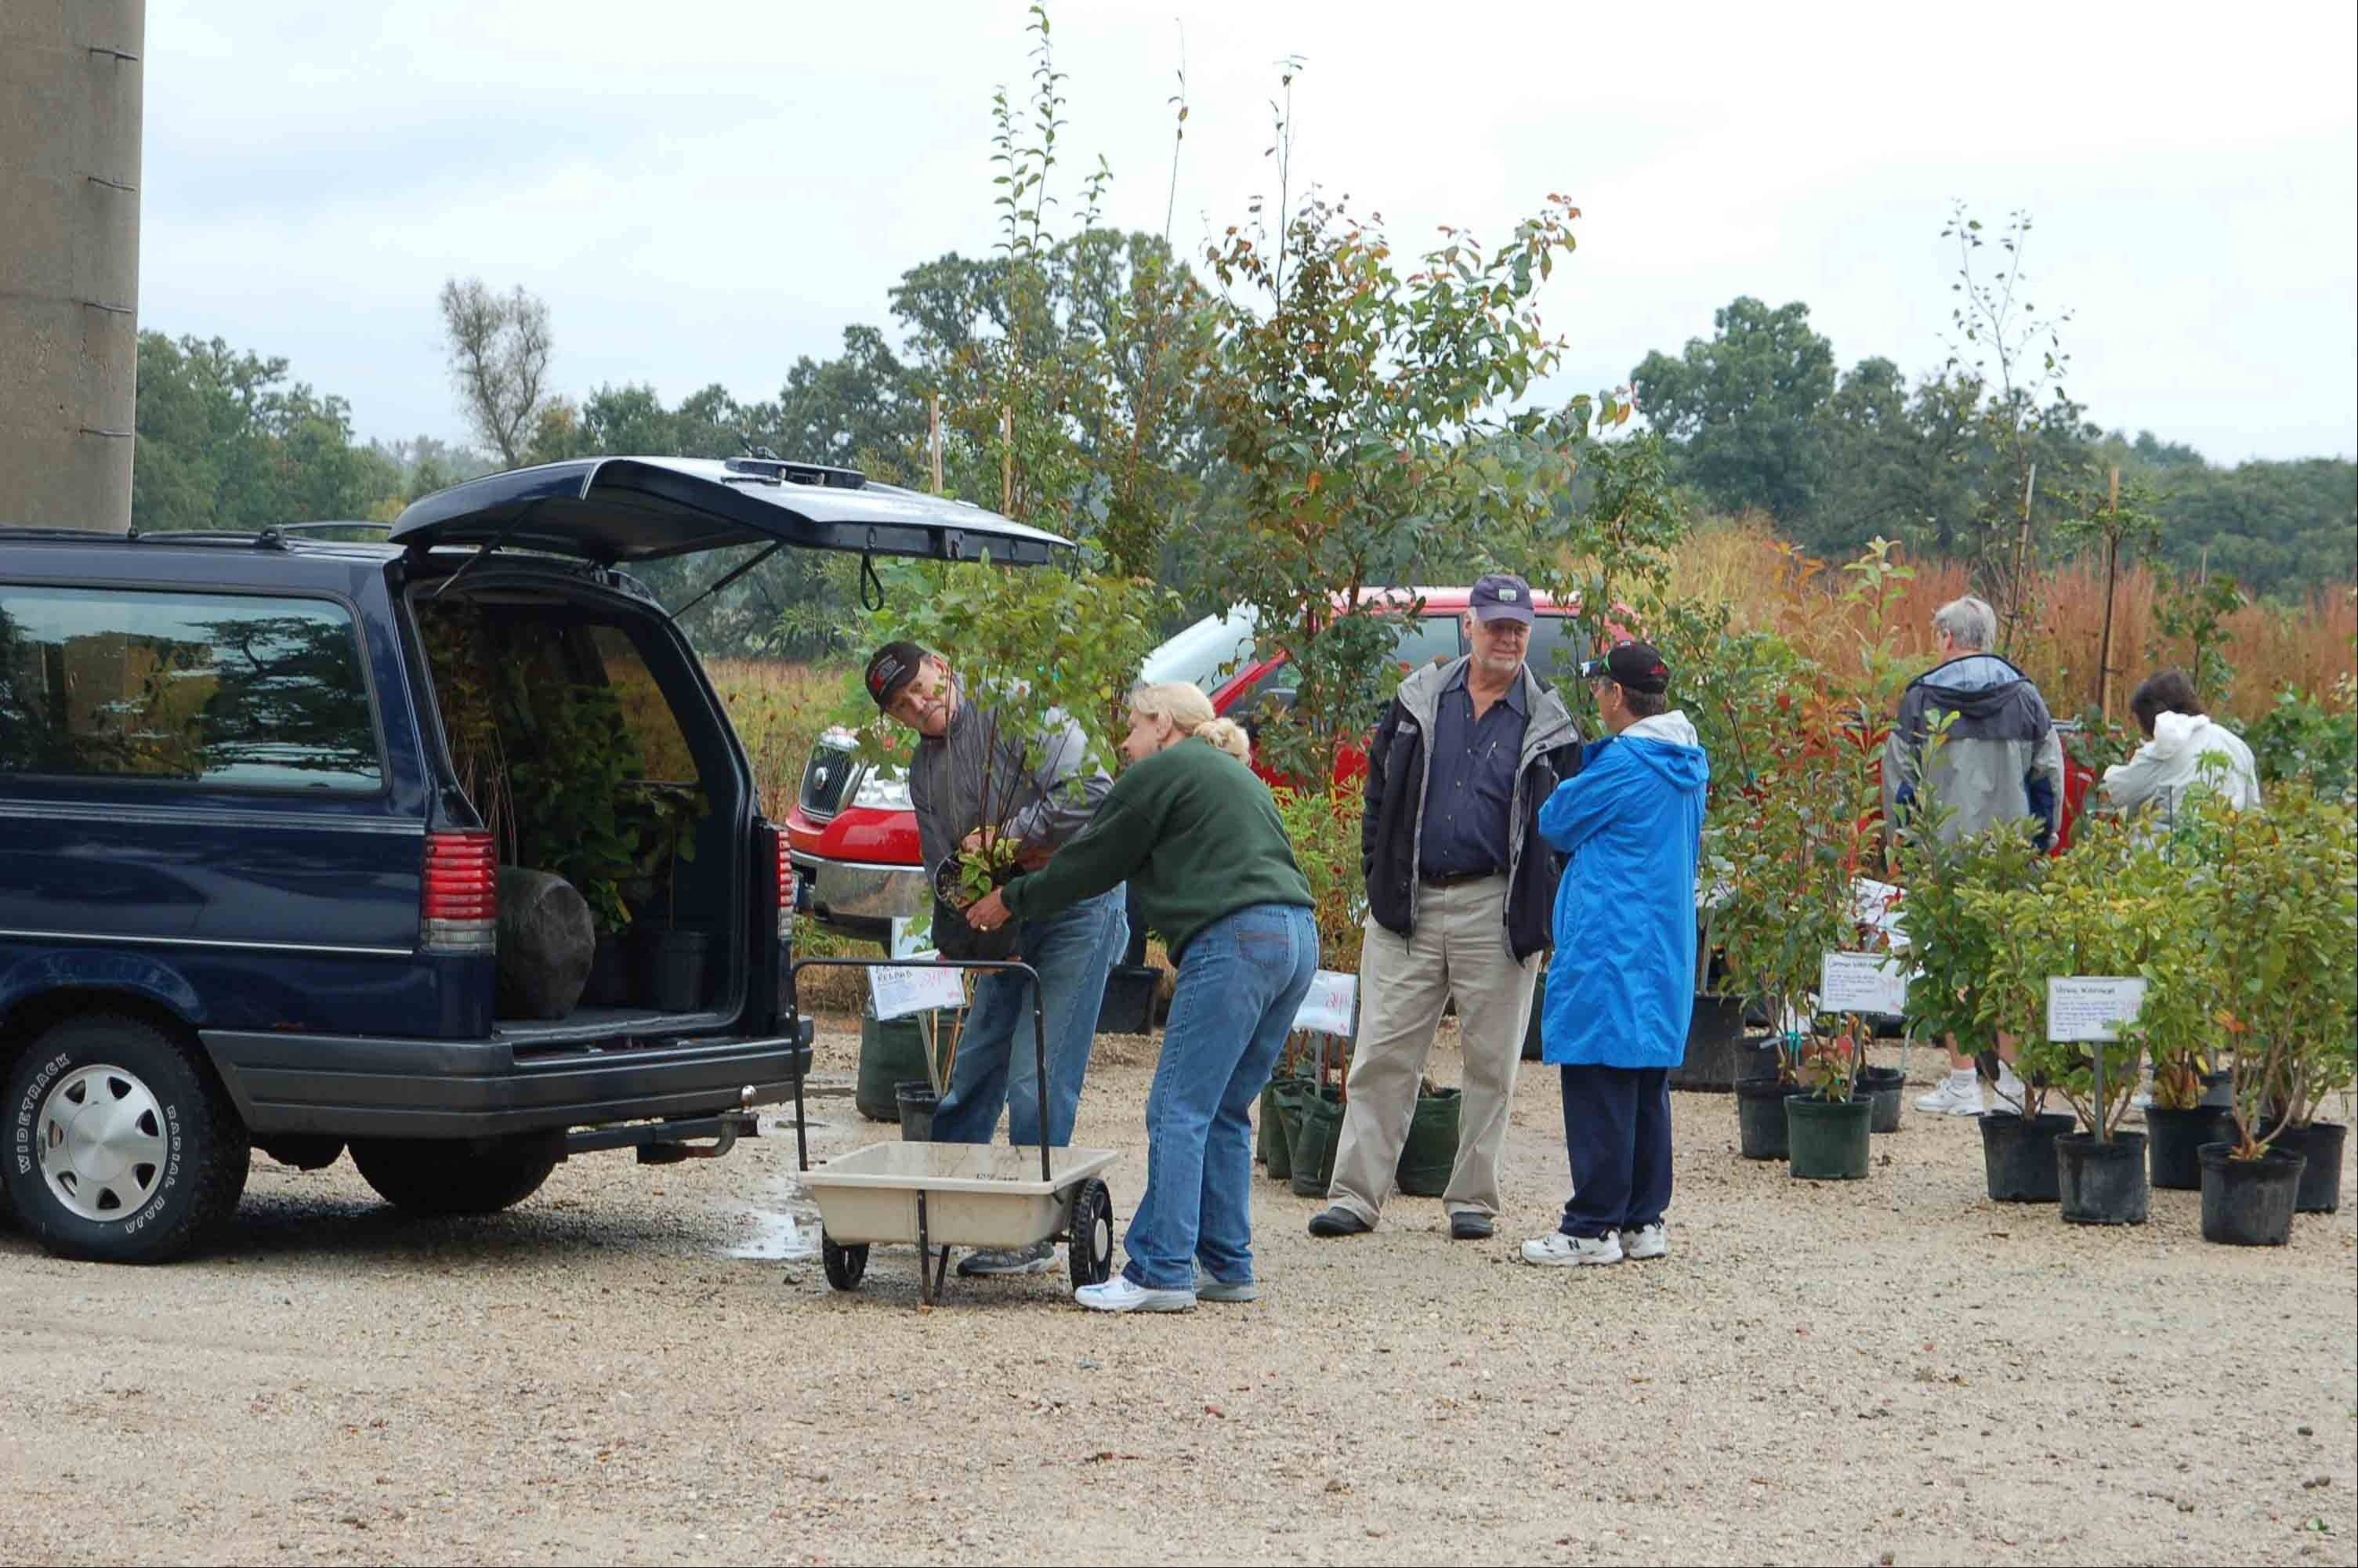 Citizens for Conservation is accepting orders through Tuesday, Sept. 6, for its annual fall native tree and shrub sale. Choose from 30 different shrubs and 40 species of trees. To download an order form, visit CitizensforConservation.org.